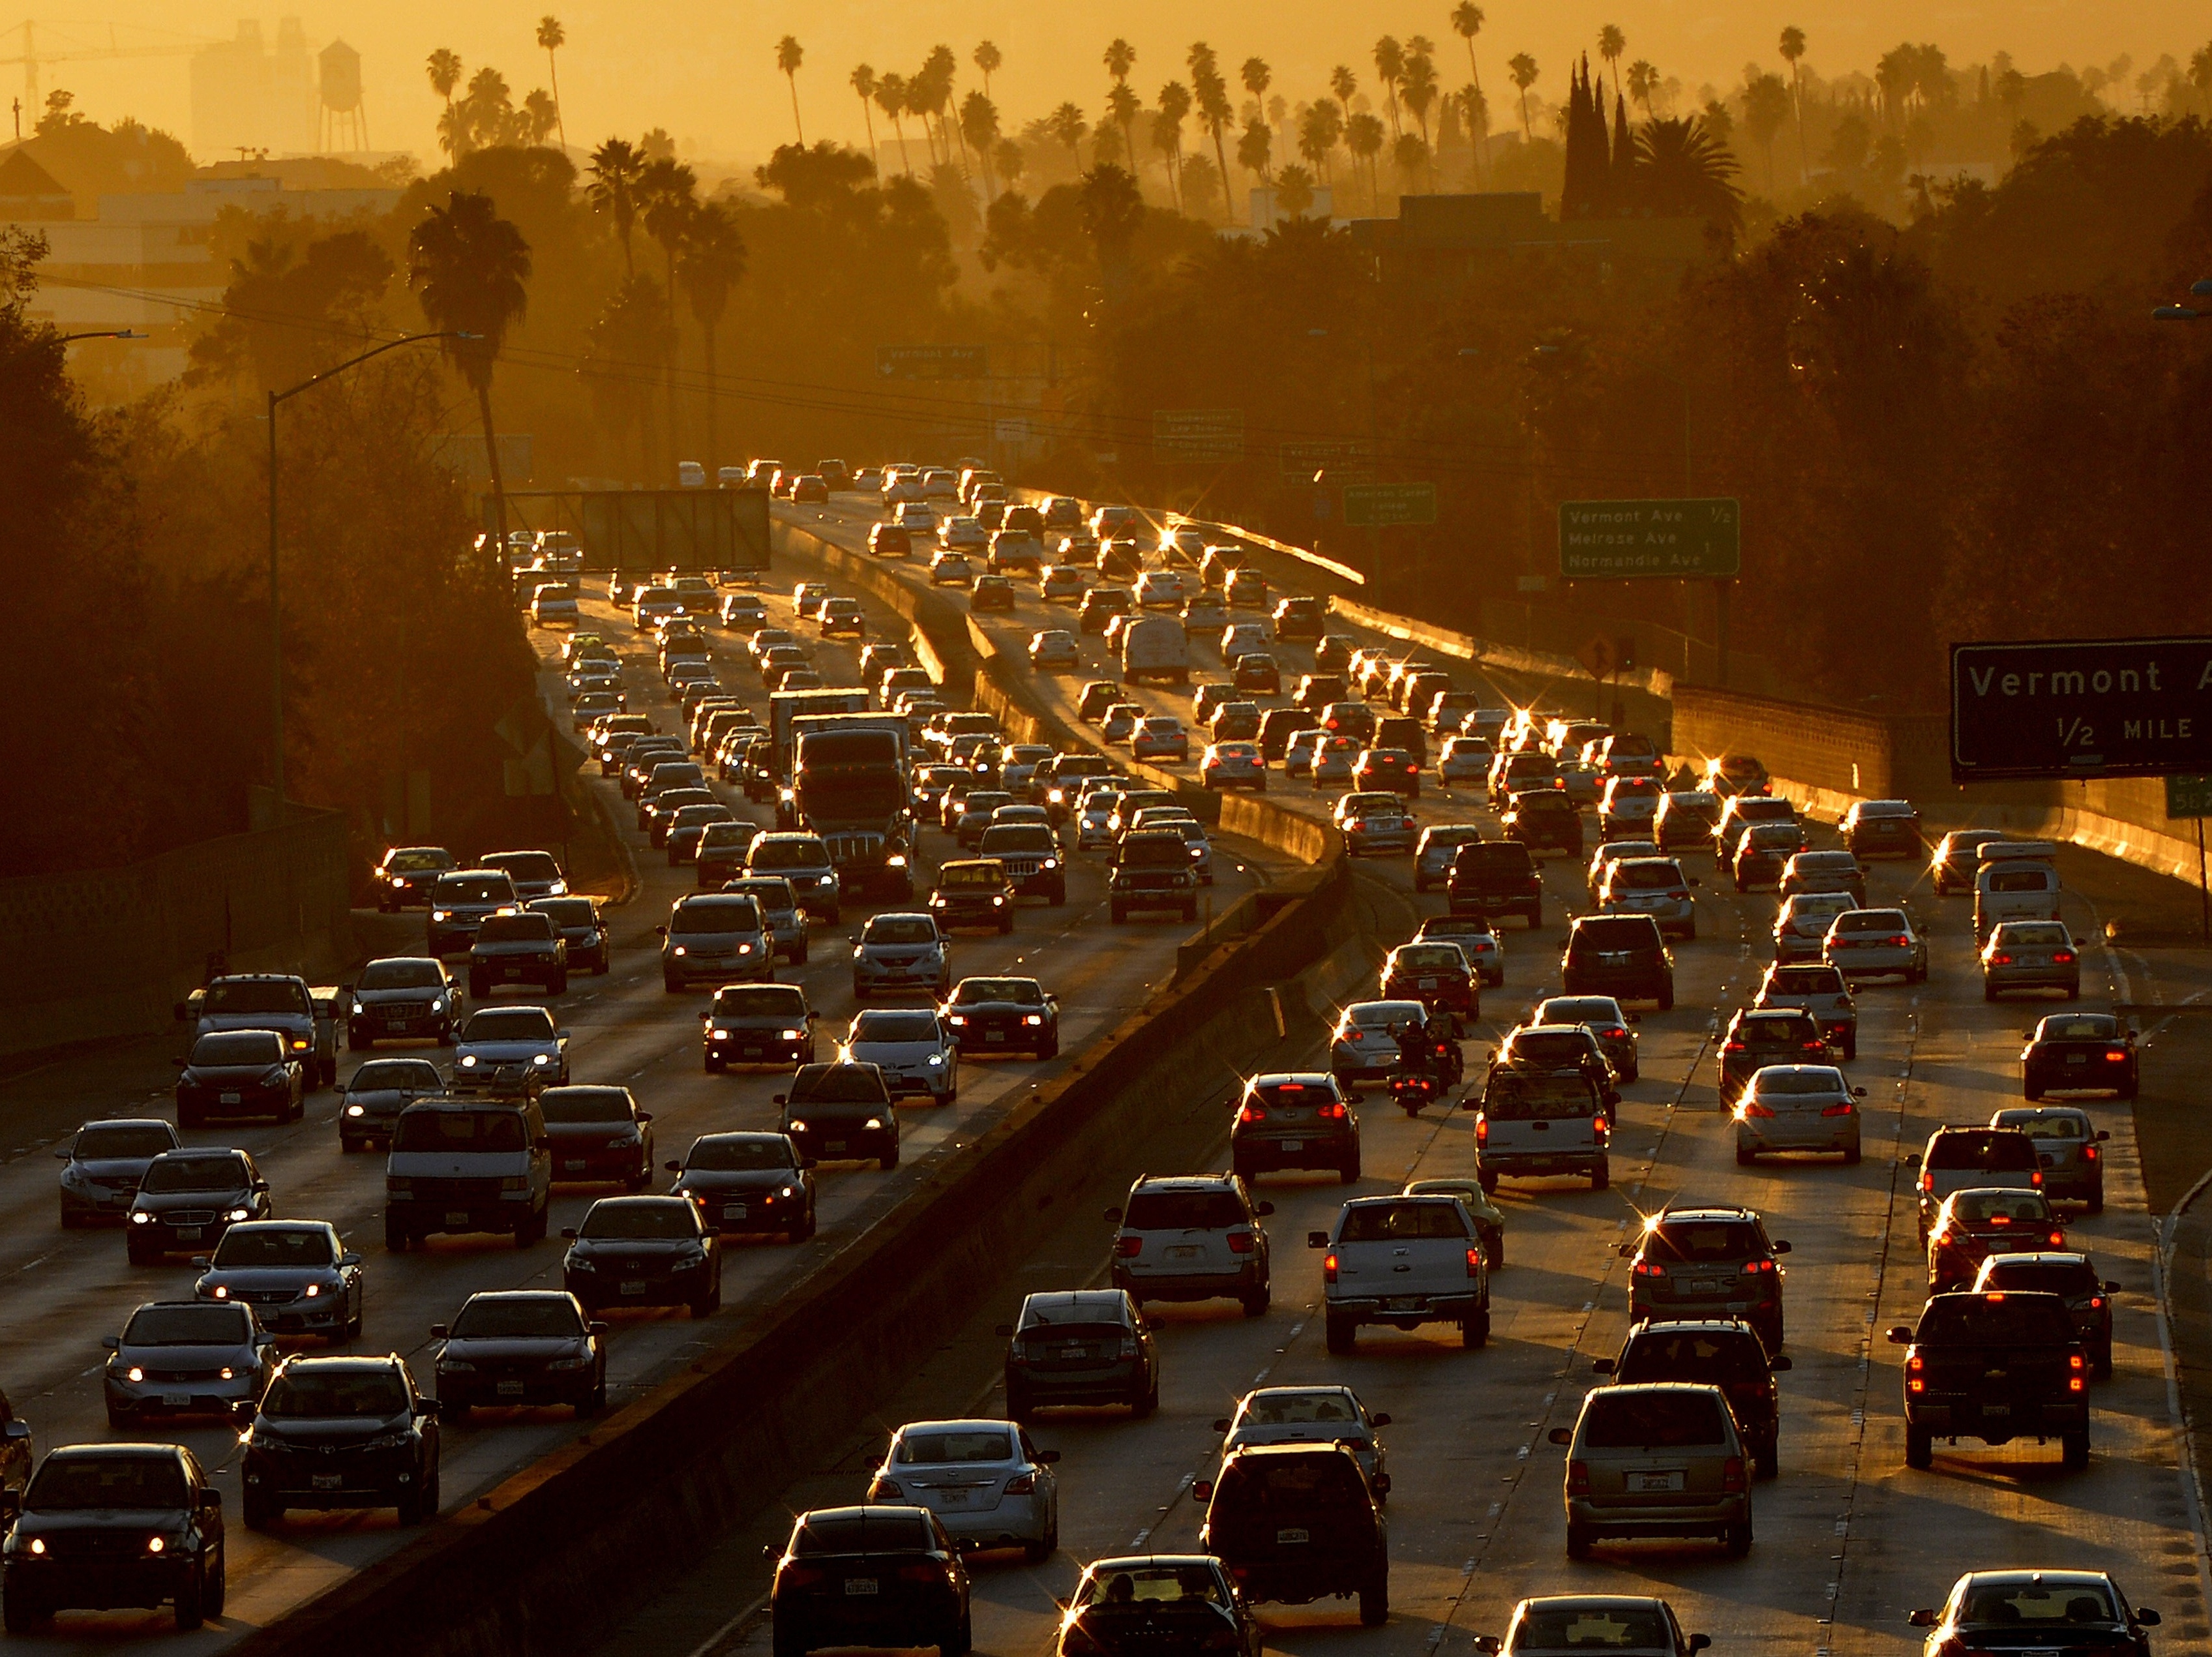 Stuck In Traffic? It's Likely To Be Worse In 30 Years, Report Says